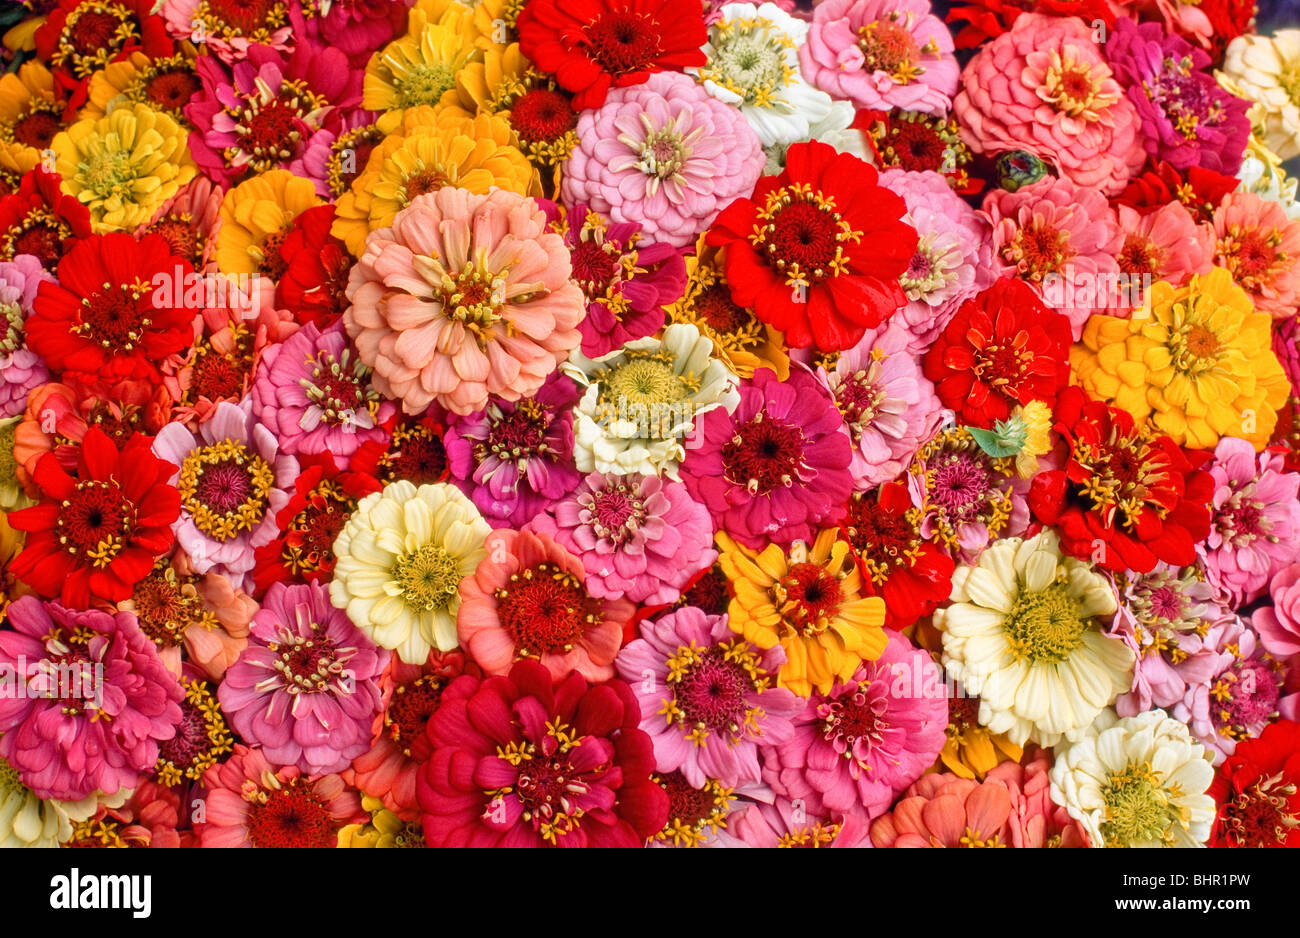 Tightly Packed Bouquets Of Red Orange Yellow Pink And White Stock